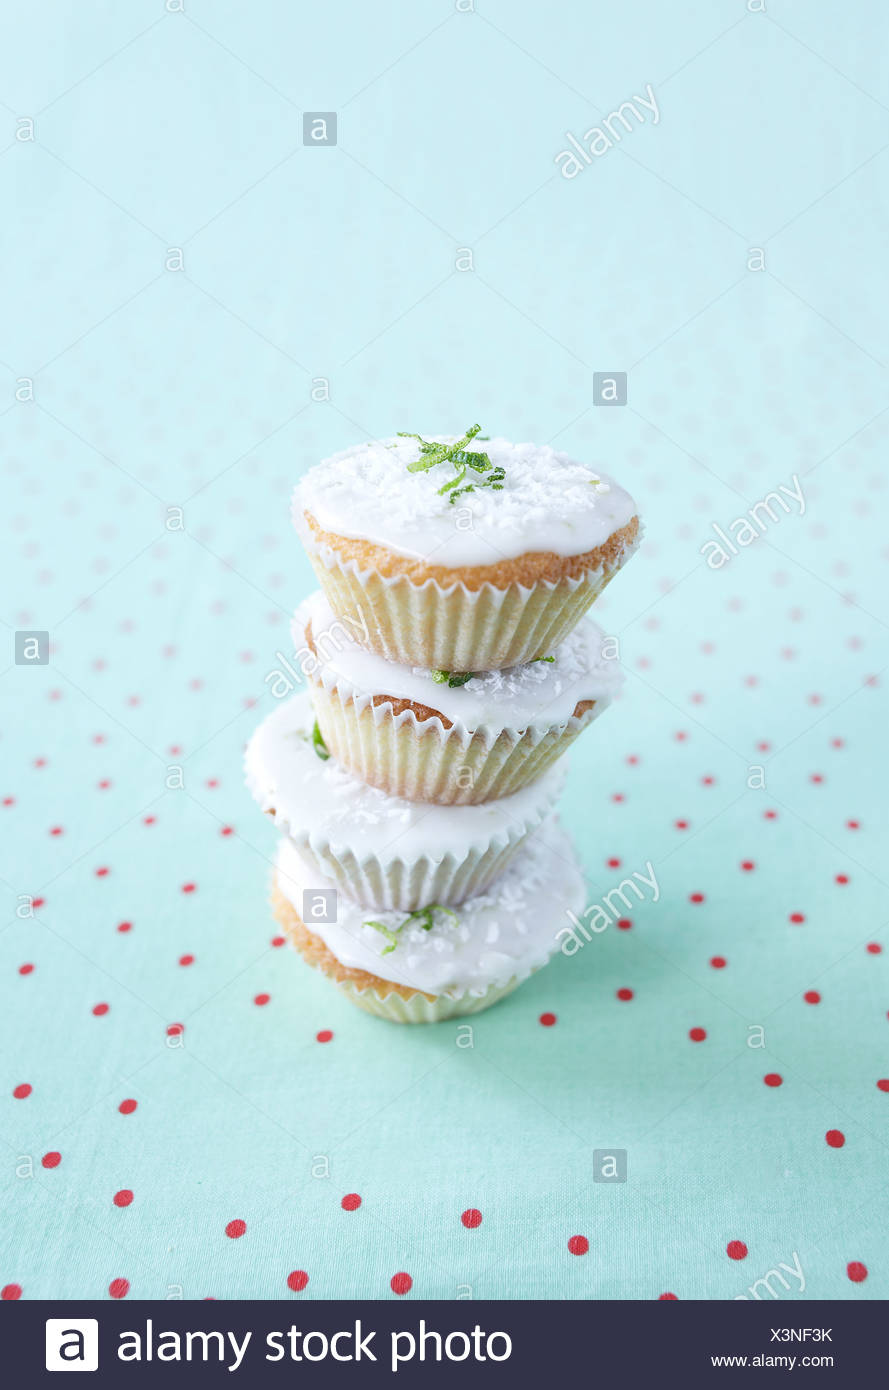 Lime and coconut cupcakes, close-up - Stock Image